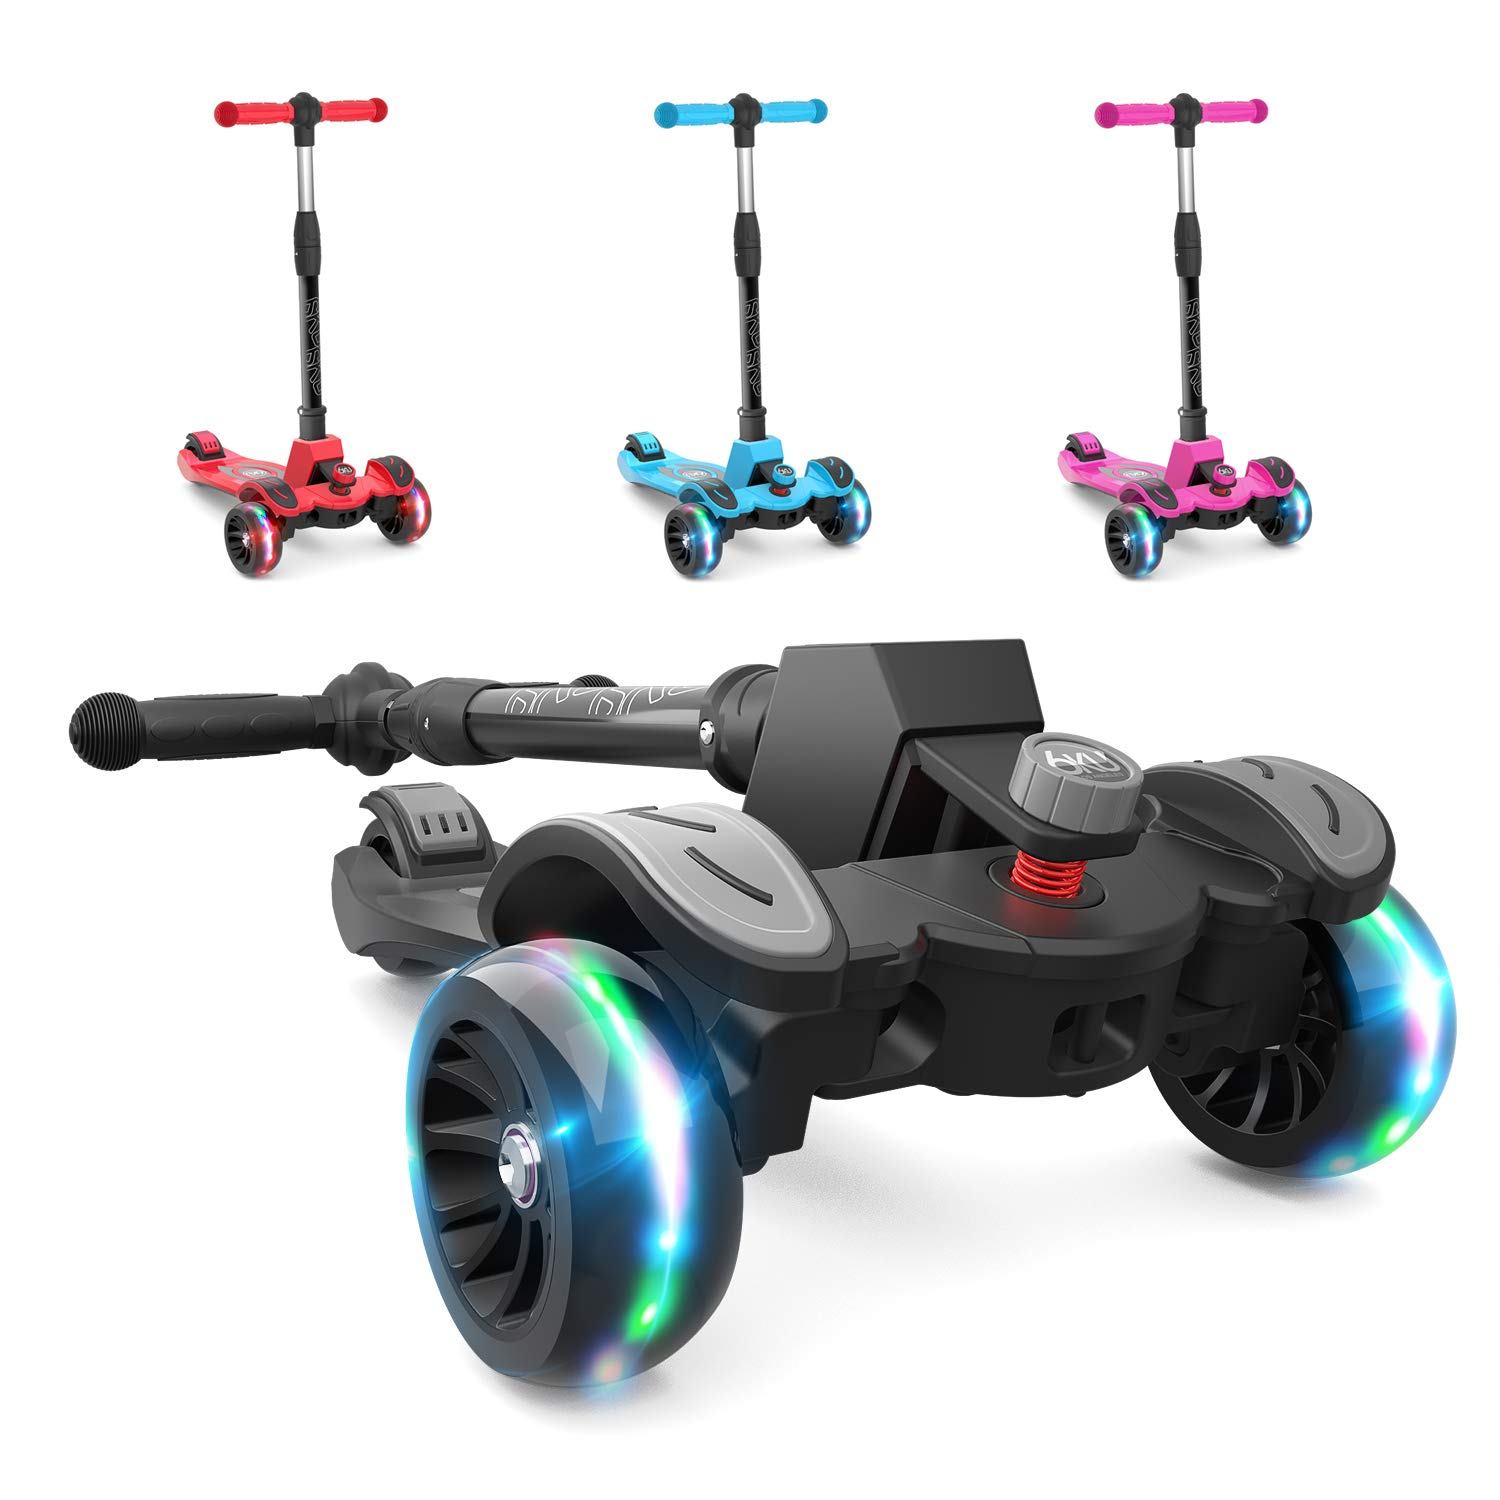 6KU Kids Kick Scooter with Adjustable Height, Lean to Steer, Flashing Wheels for Children 3-8 Years Old Black by 6KU